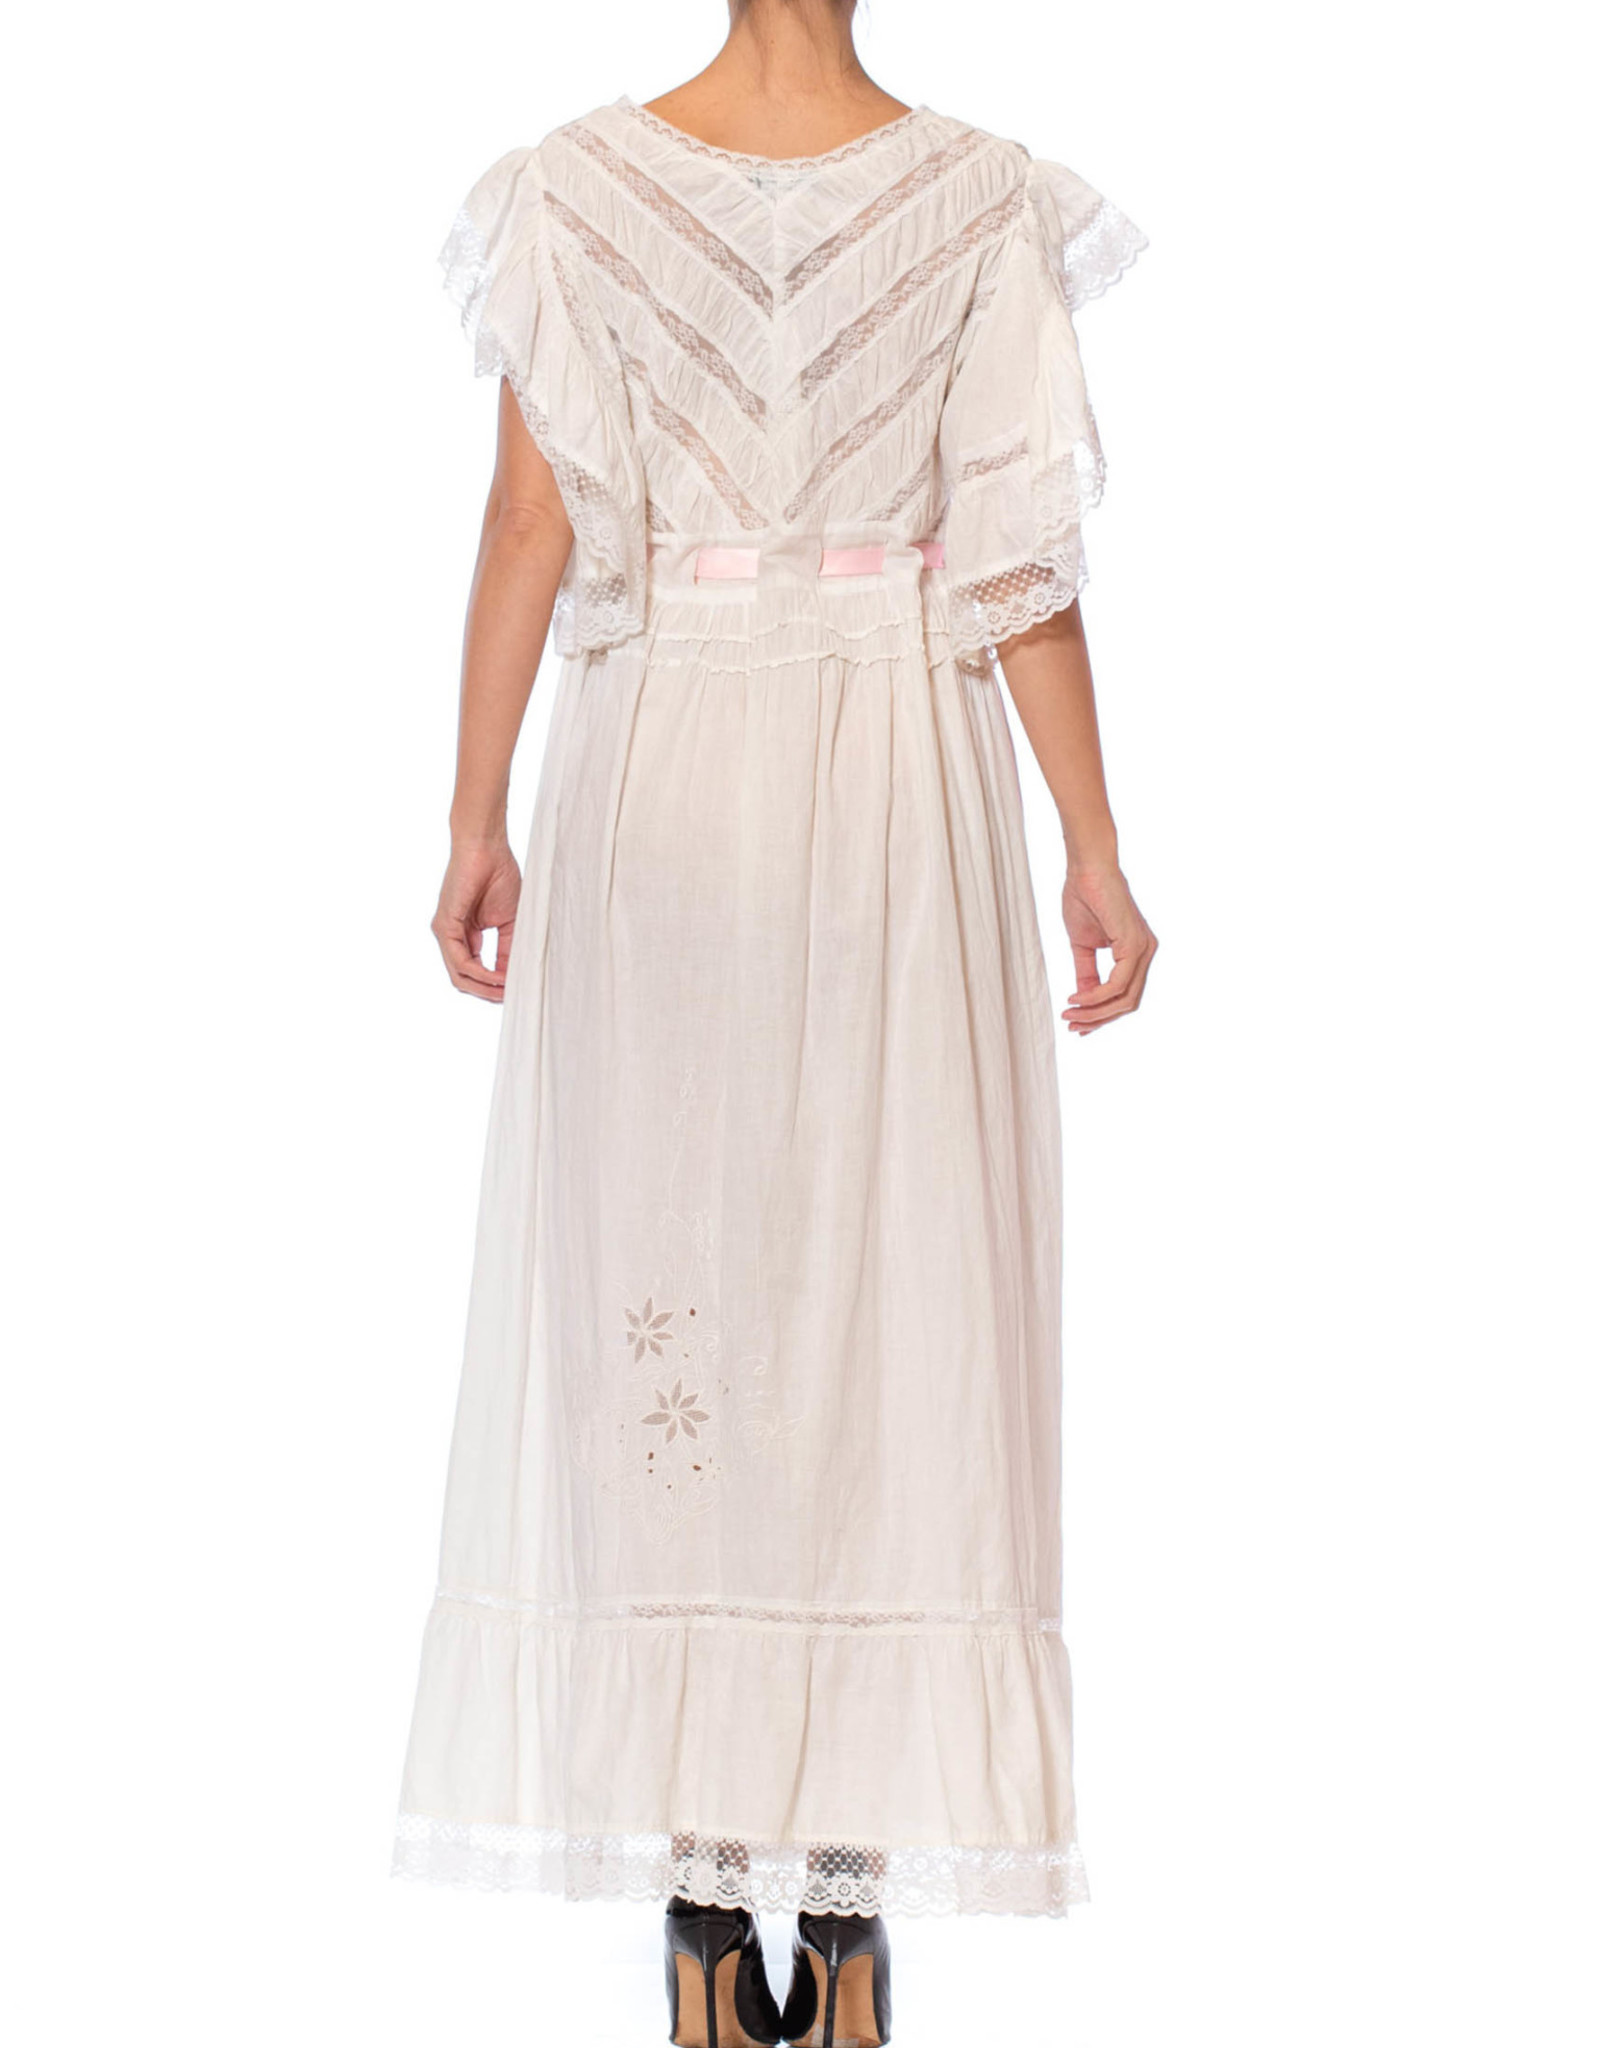 Wyld Blue Vintage Ivory Cotton Lace Victorian Revival Duster Dress (1970s Vintage)